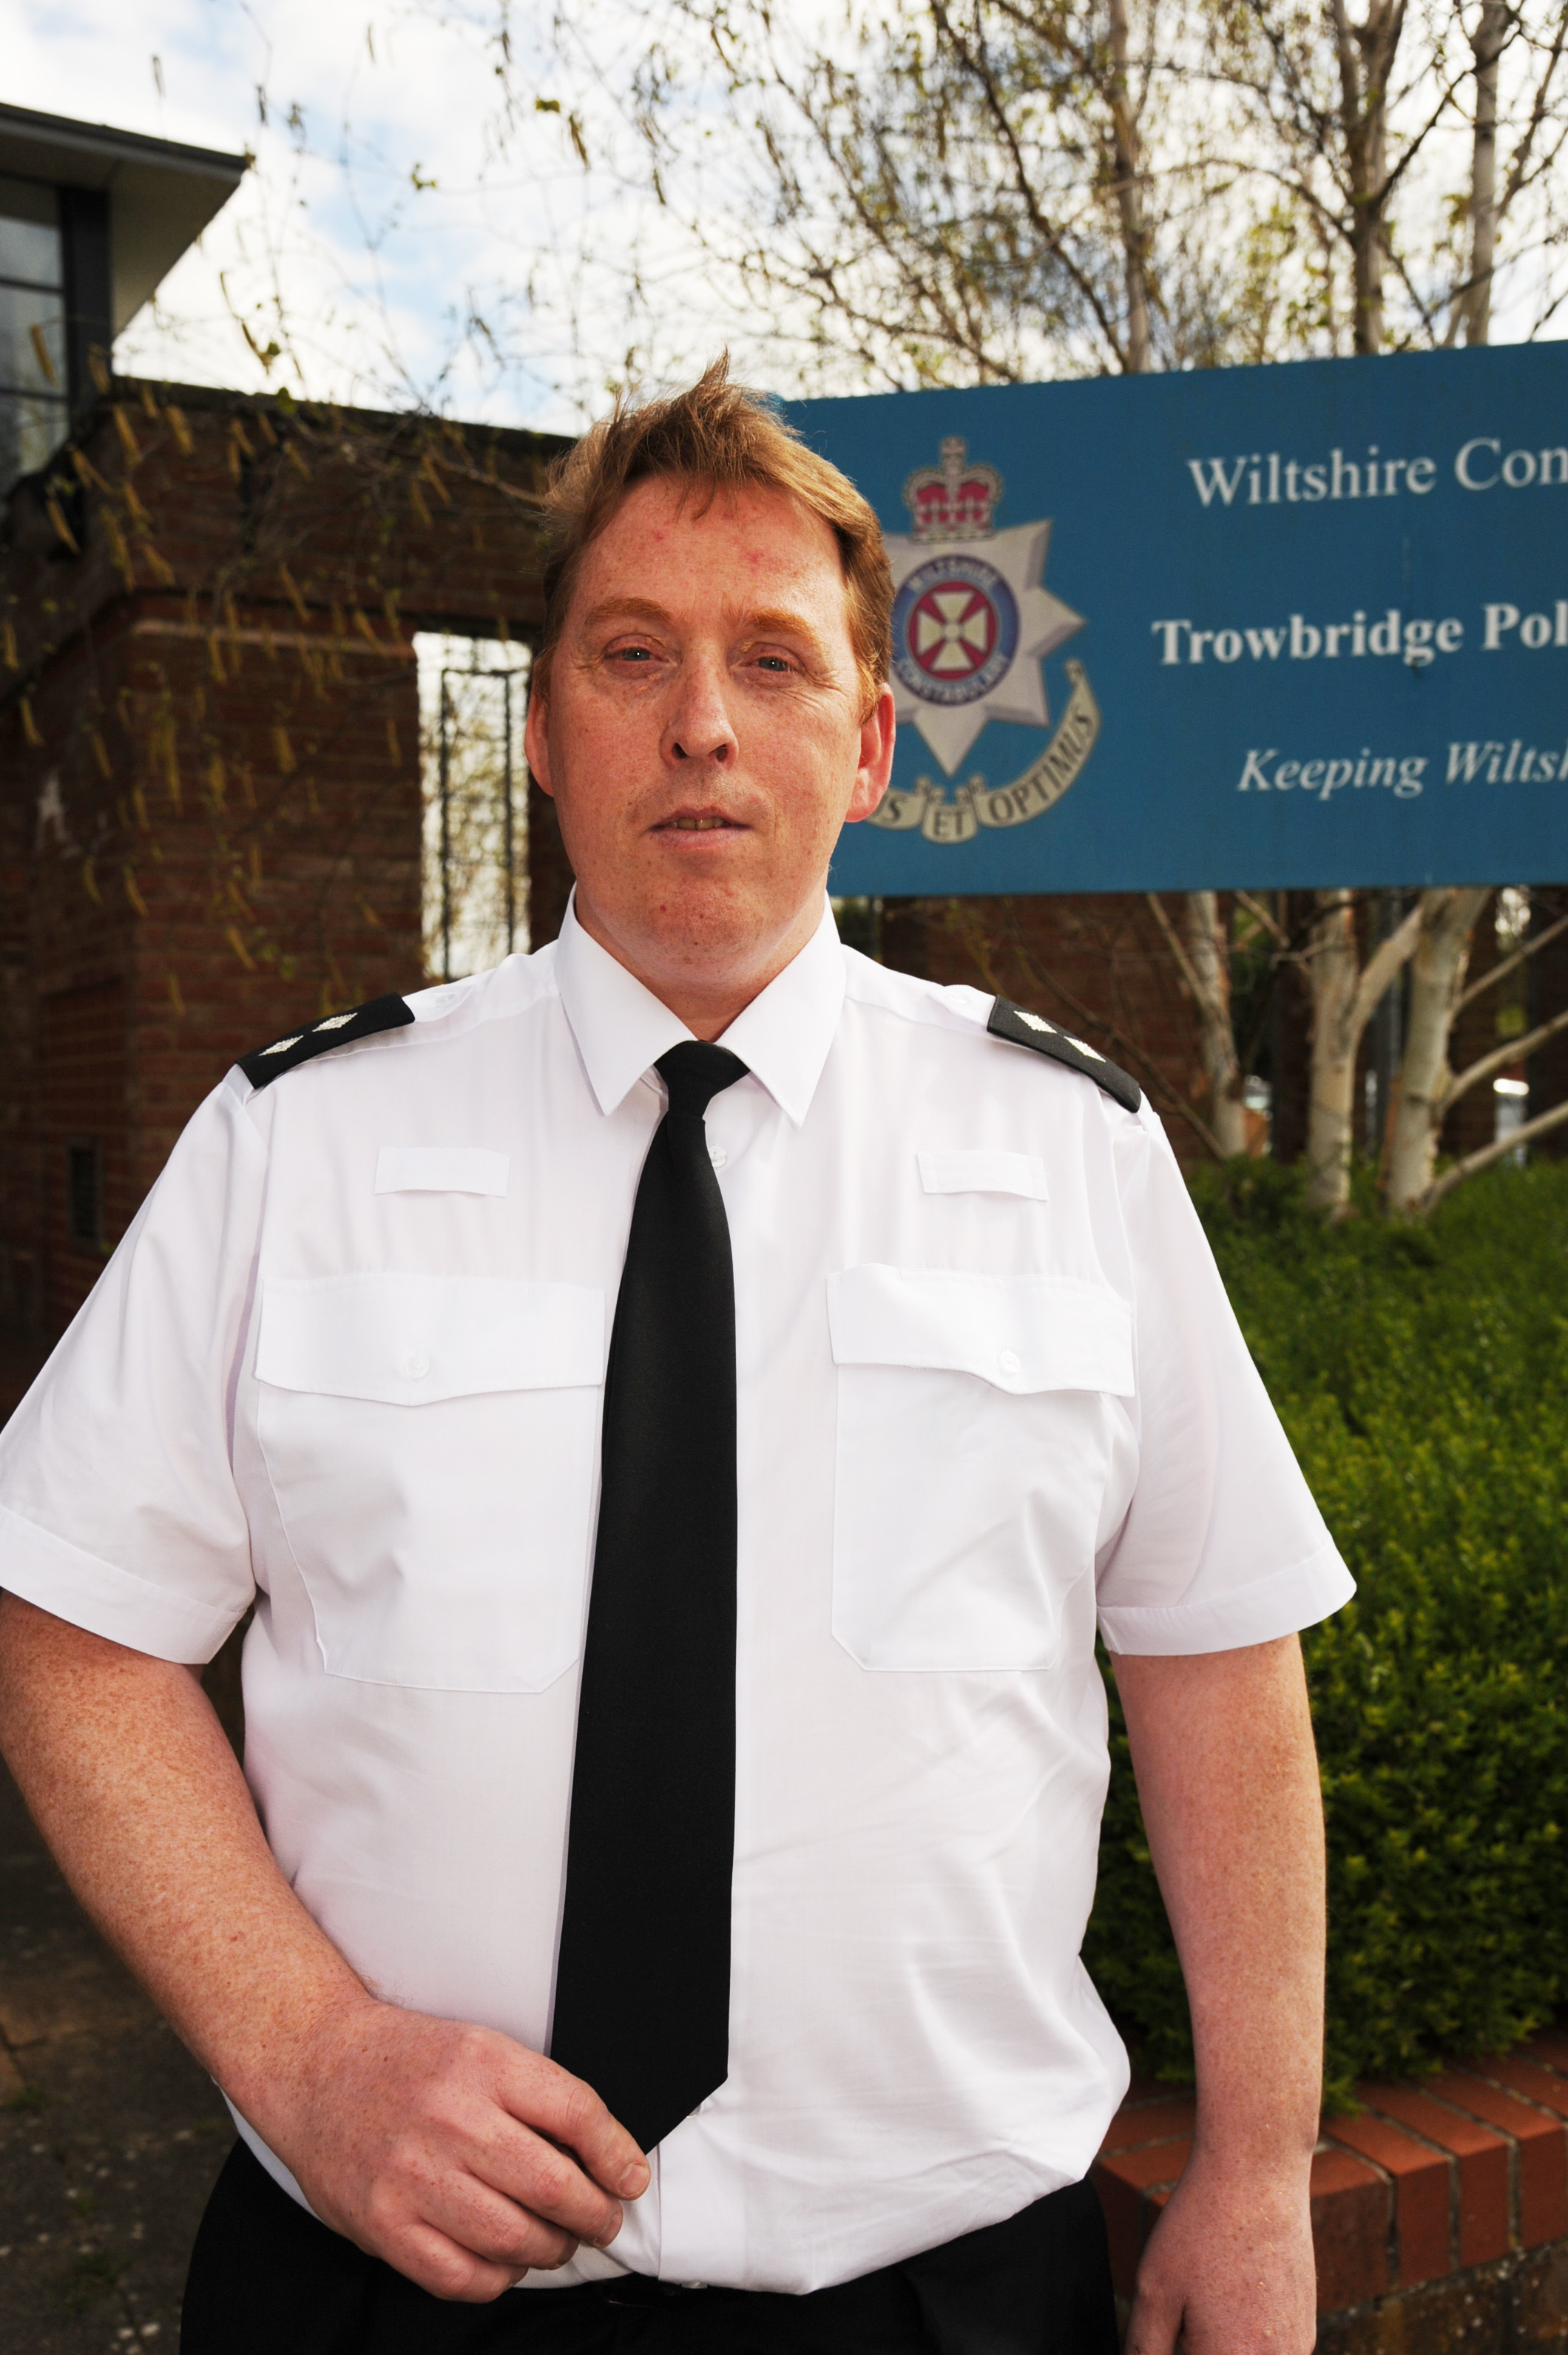 New Police Inspector Trowbridge. Inspector Andy Fee taking over  in the Wiltshire West Community Police team. Pics Trevor Porter 58466 5.